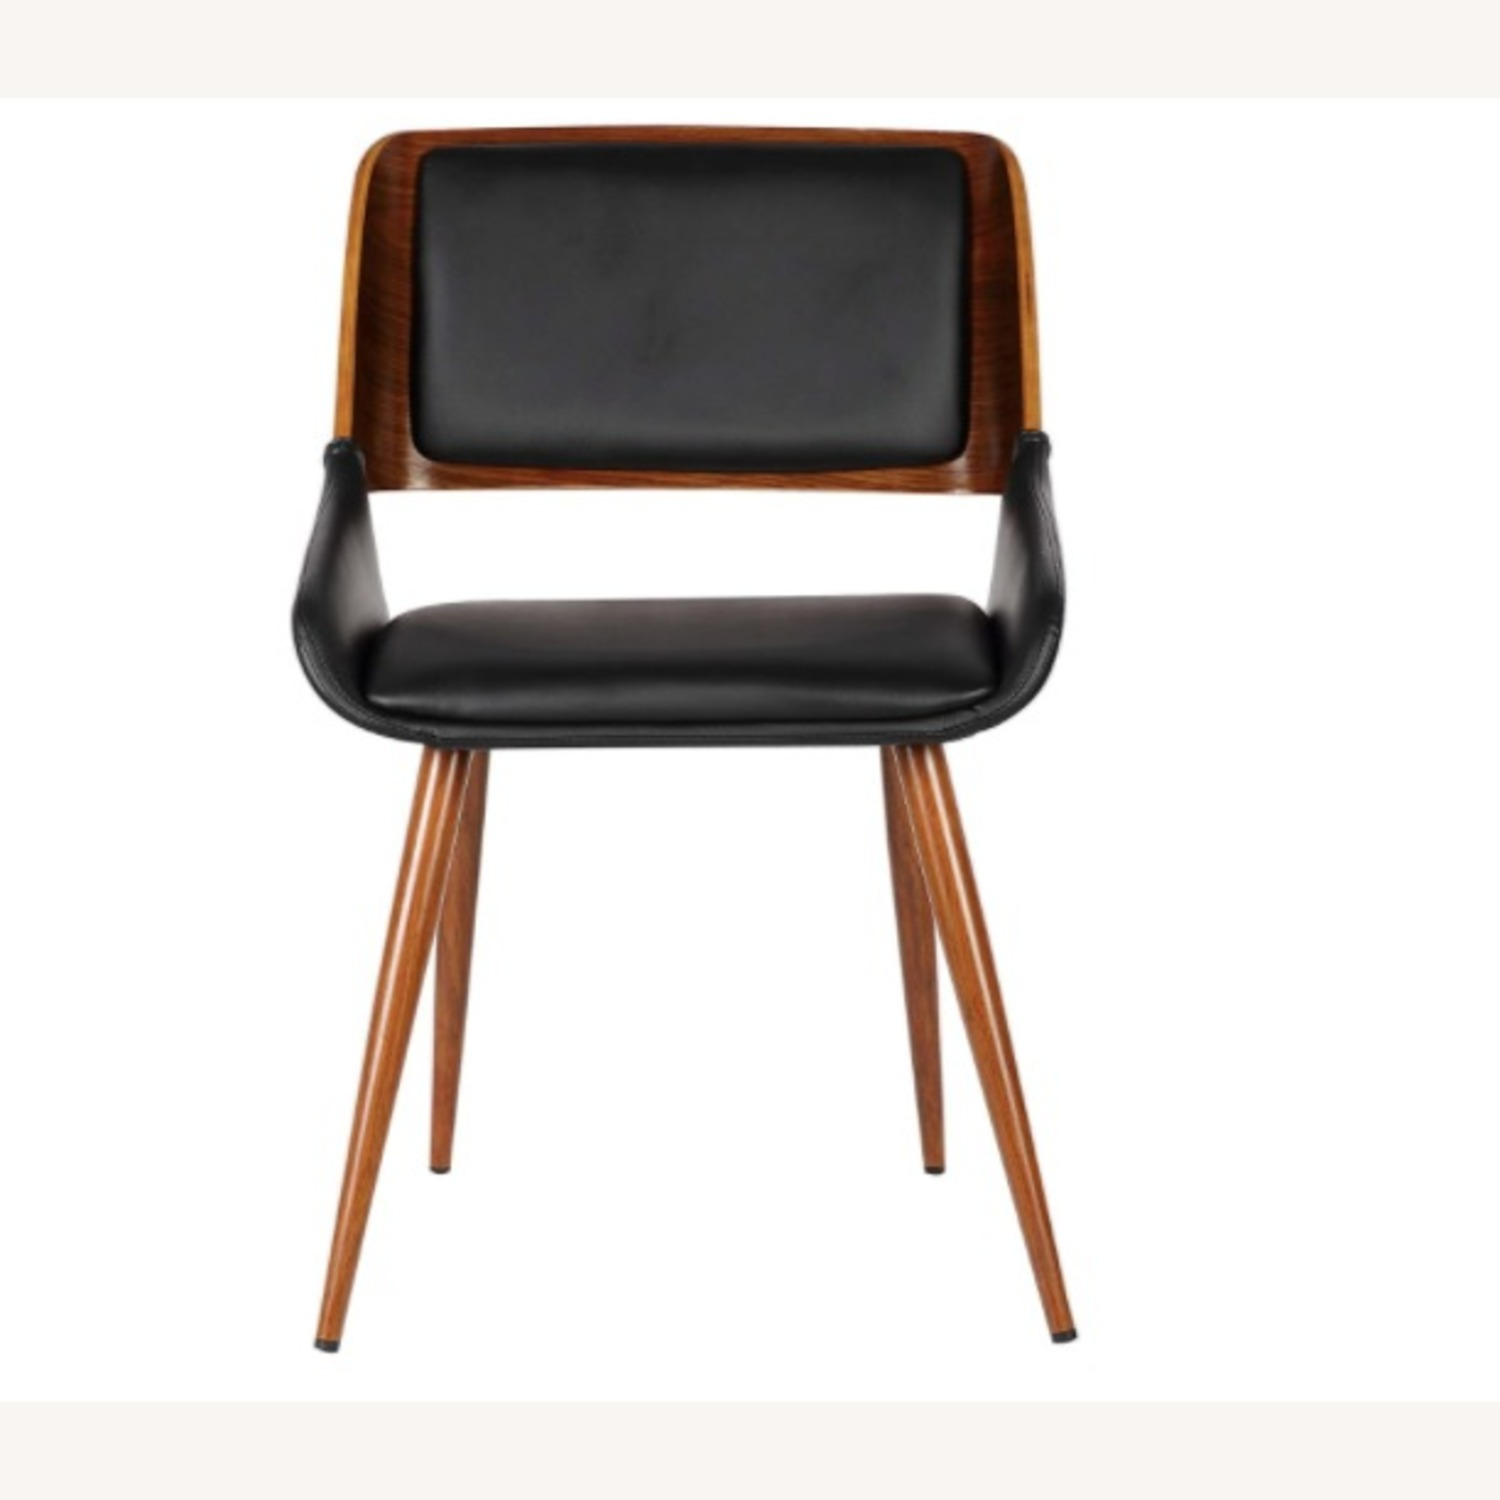 Mid Century Modern Faux Leather Dining Chair - image-2